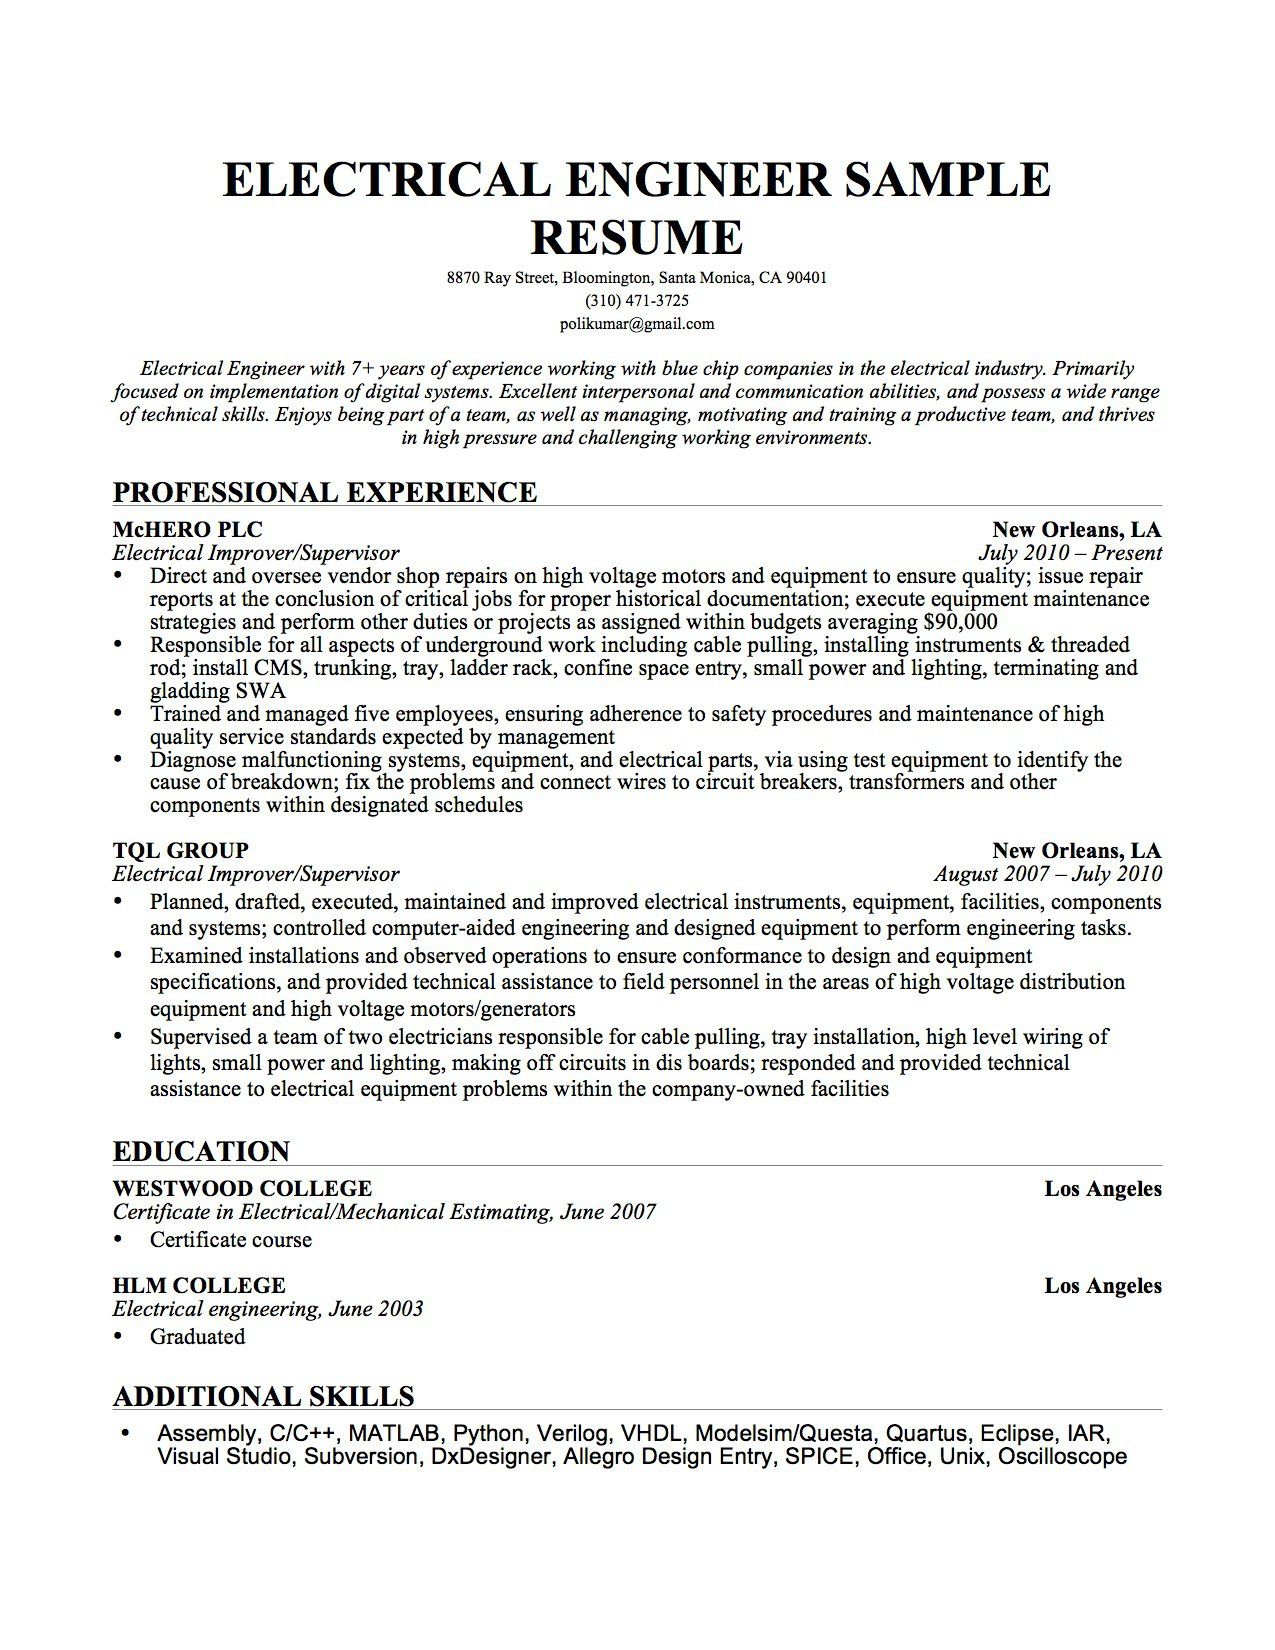 Superb Engineer Sample Resume Equipment Fixed Biomedical Technician Cover Letter  Vosvetenet